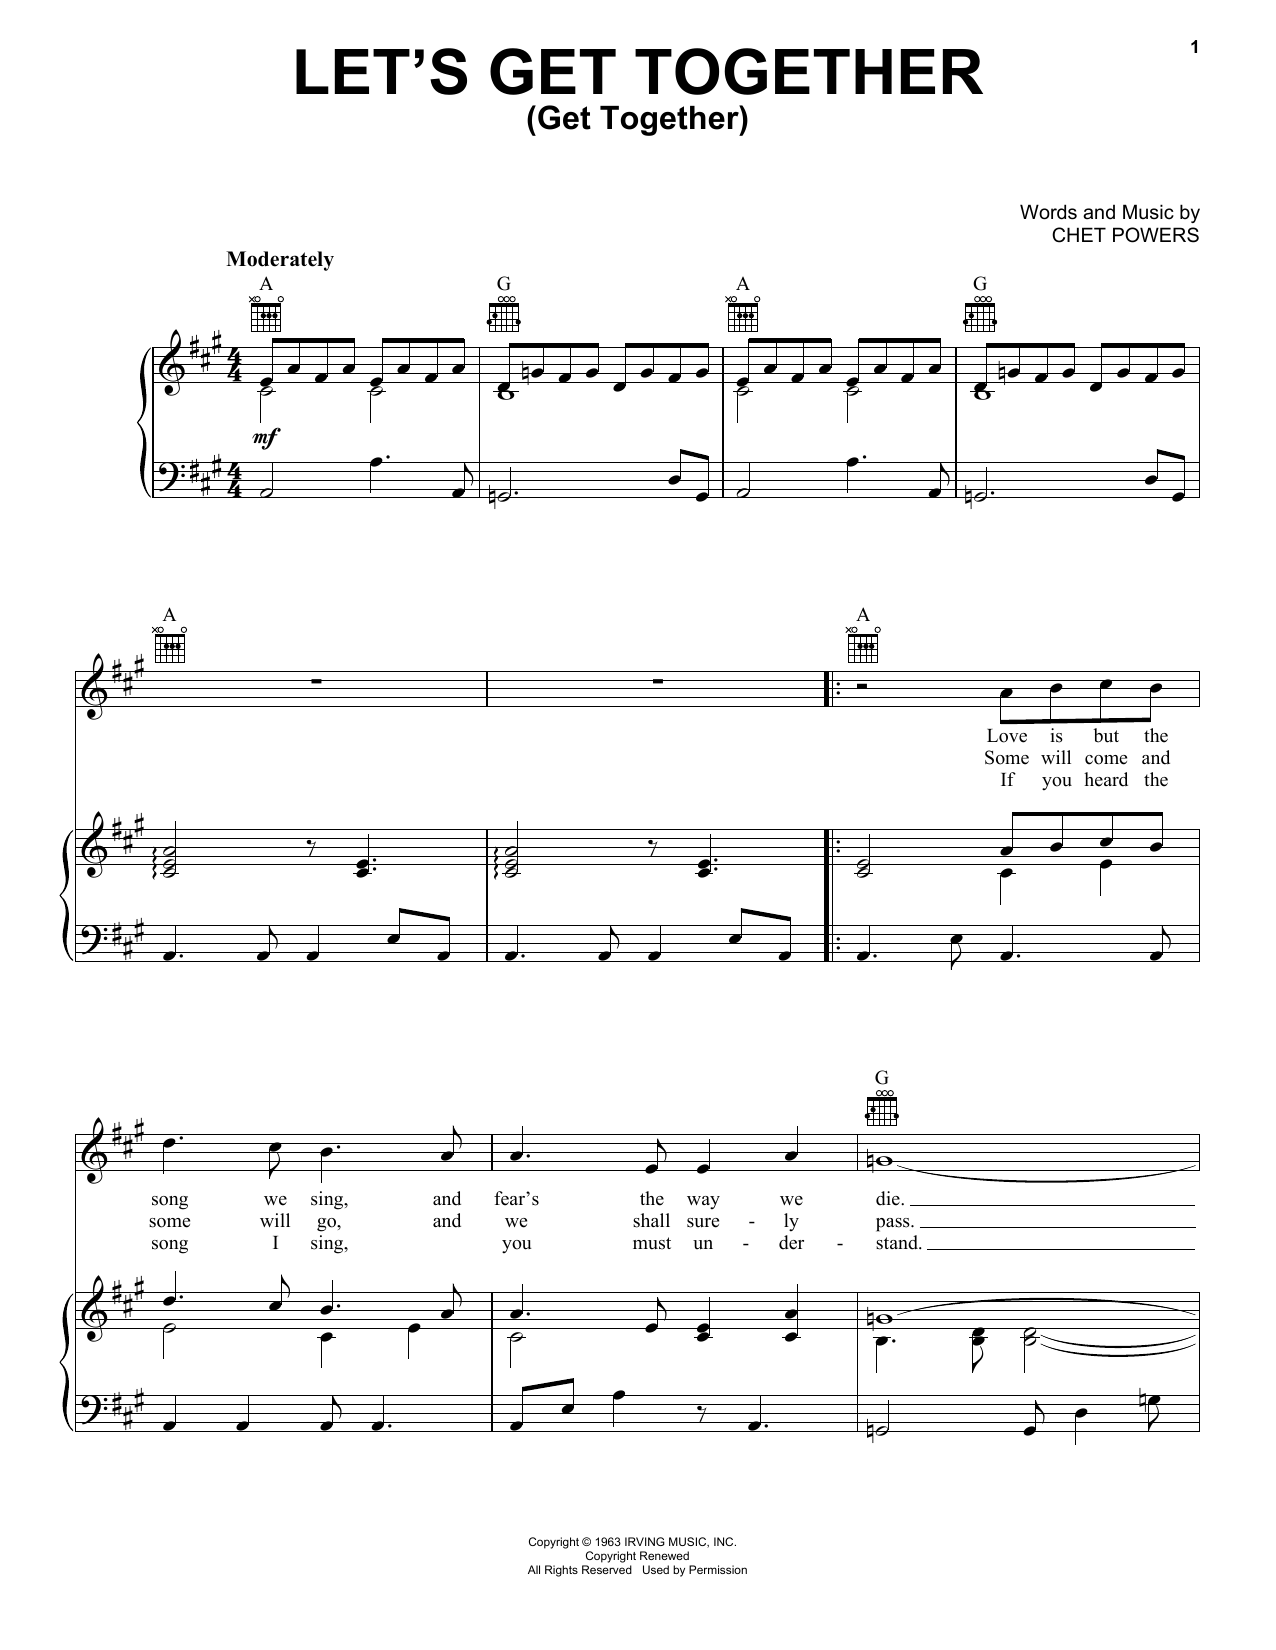 Jefferson Airplane Let's Get Together sheet music notes and chords. Download Printable PDF.